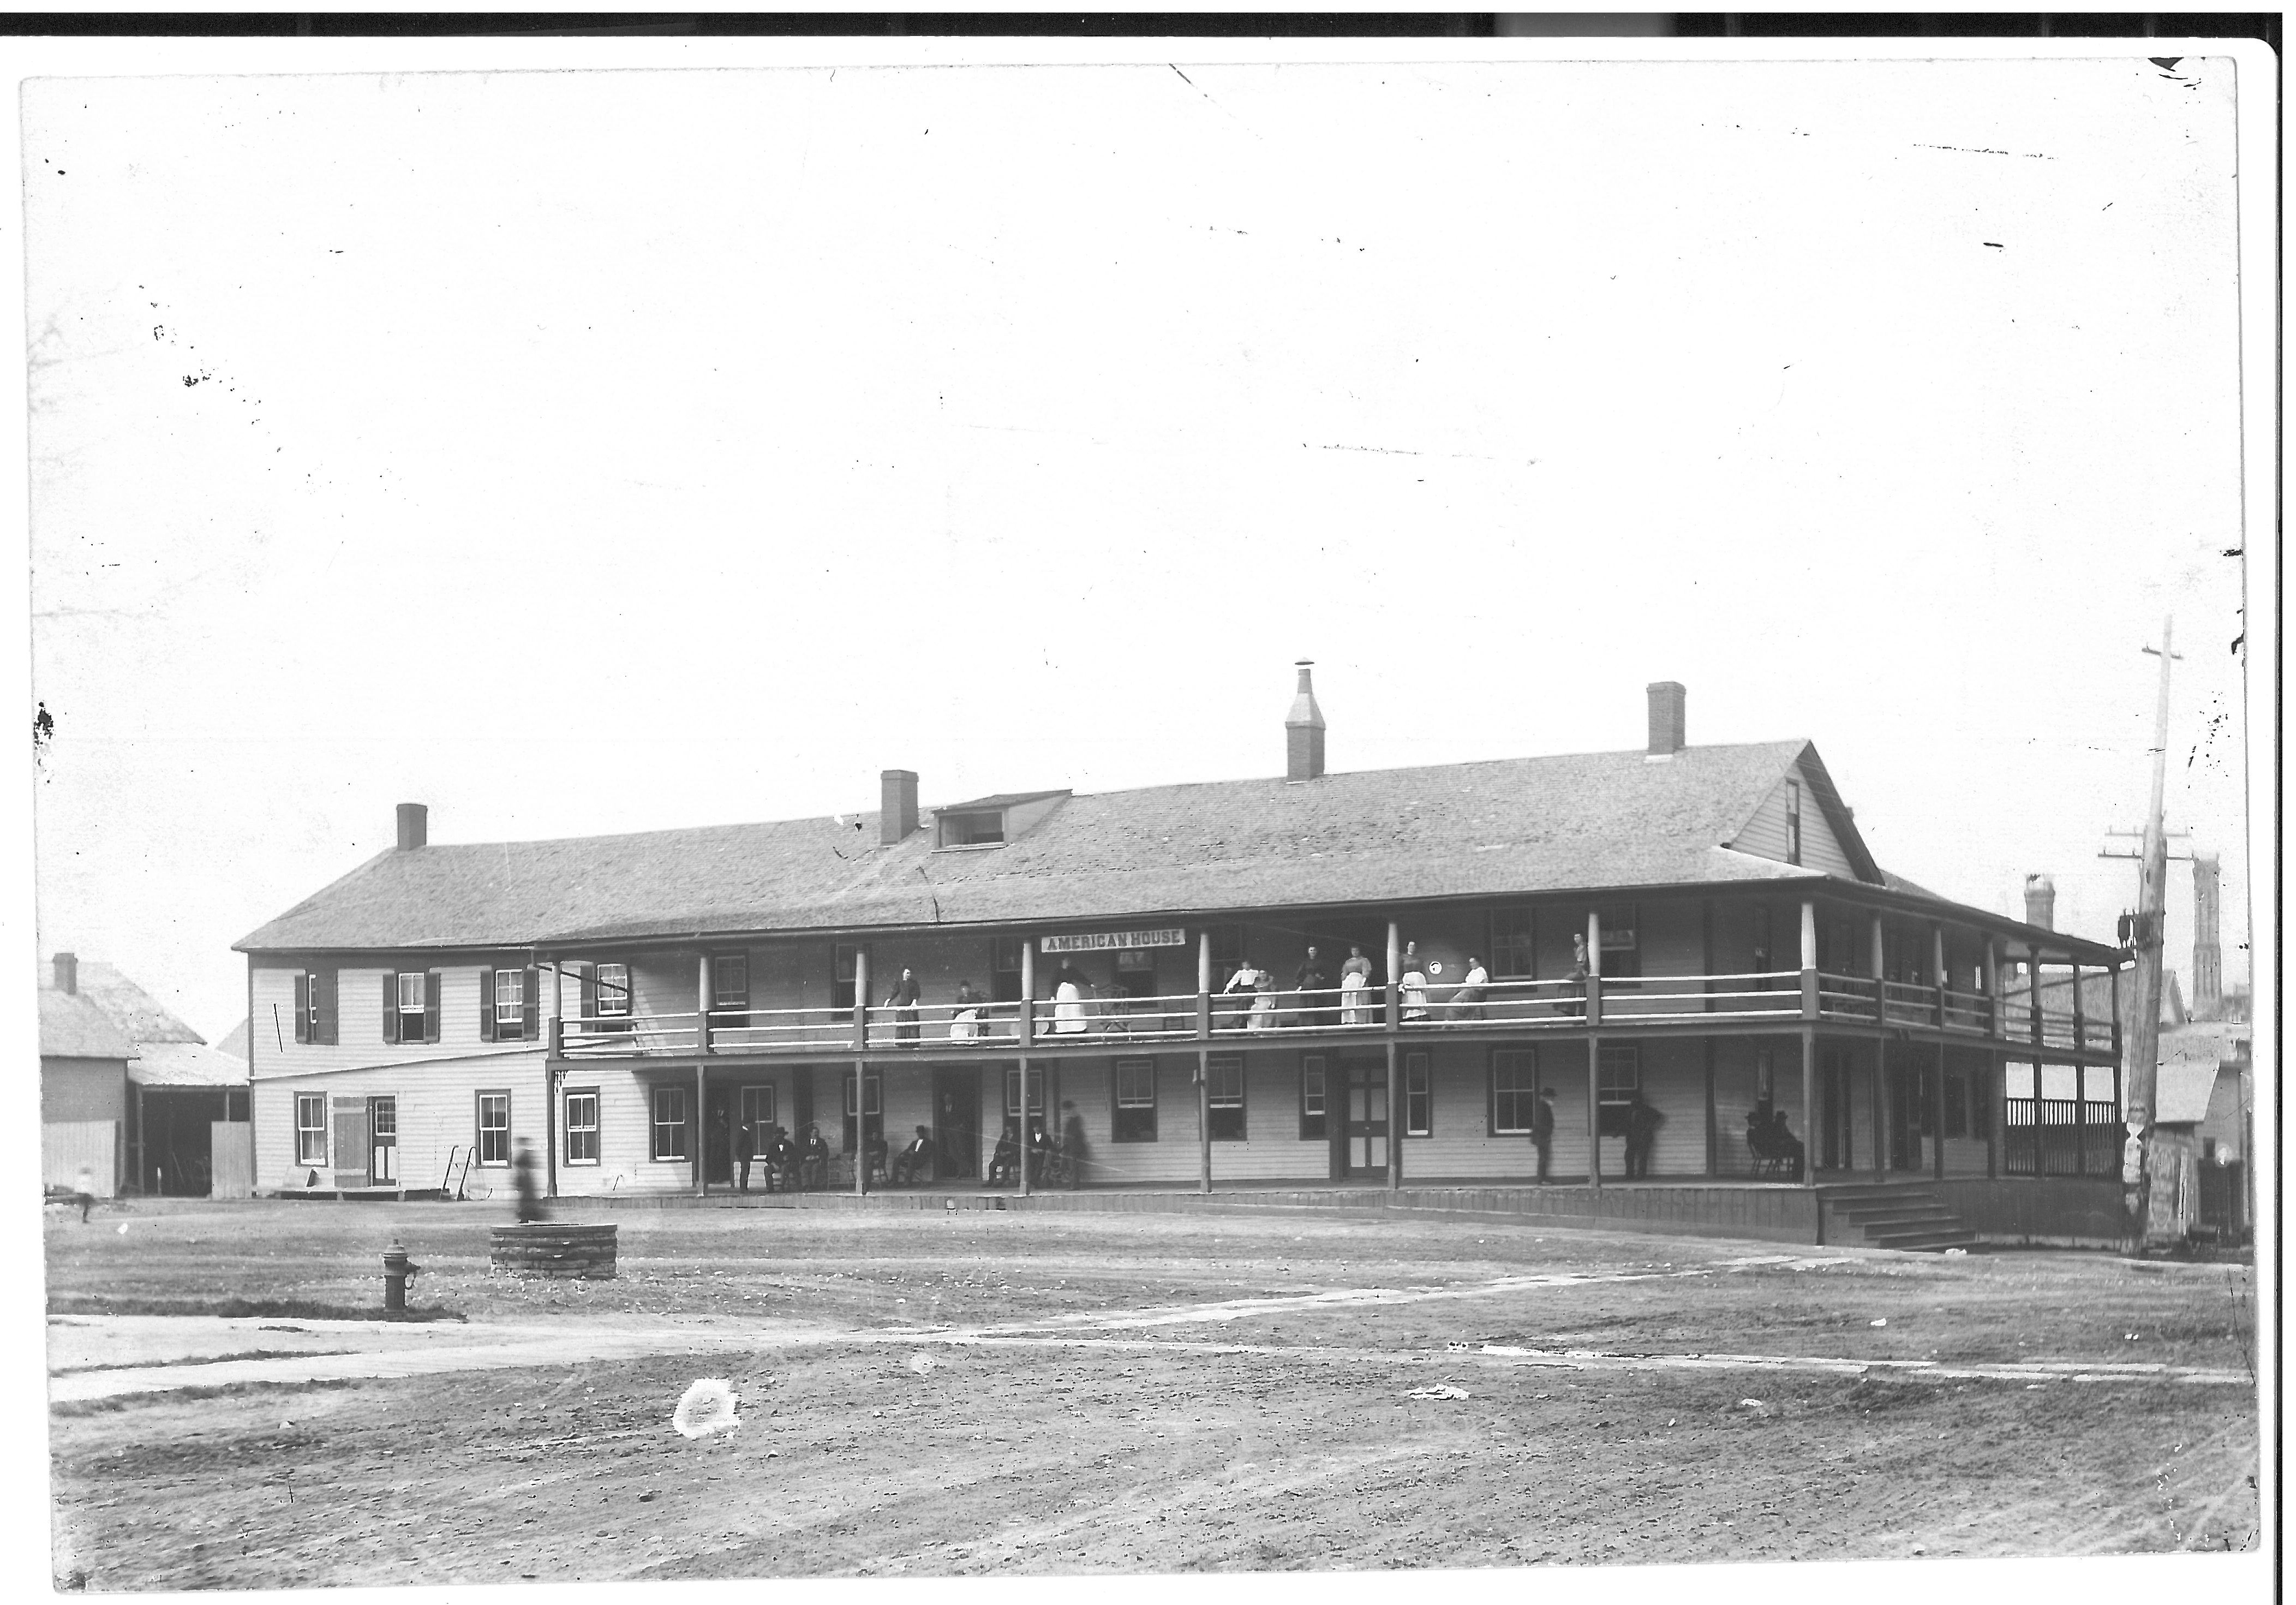 The American House hotel stood on this spot from 1823 to 1916, when it went out of business and was demolished.